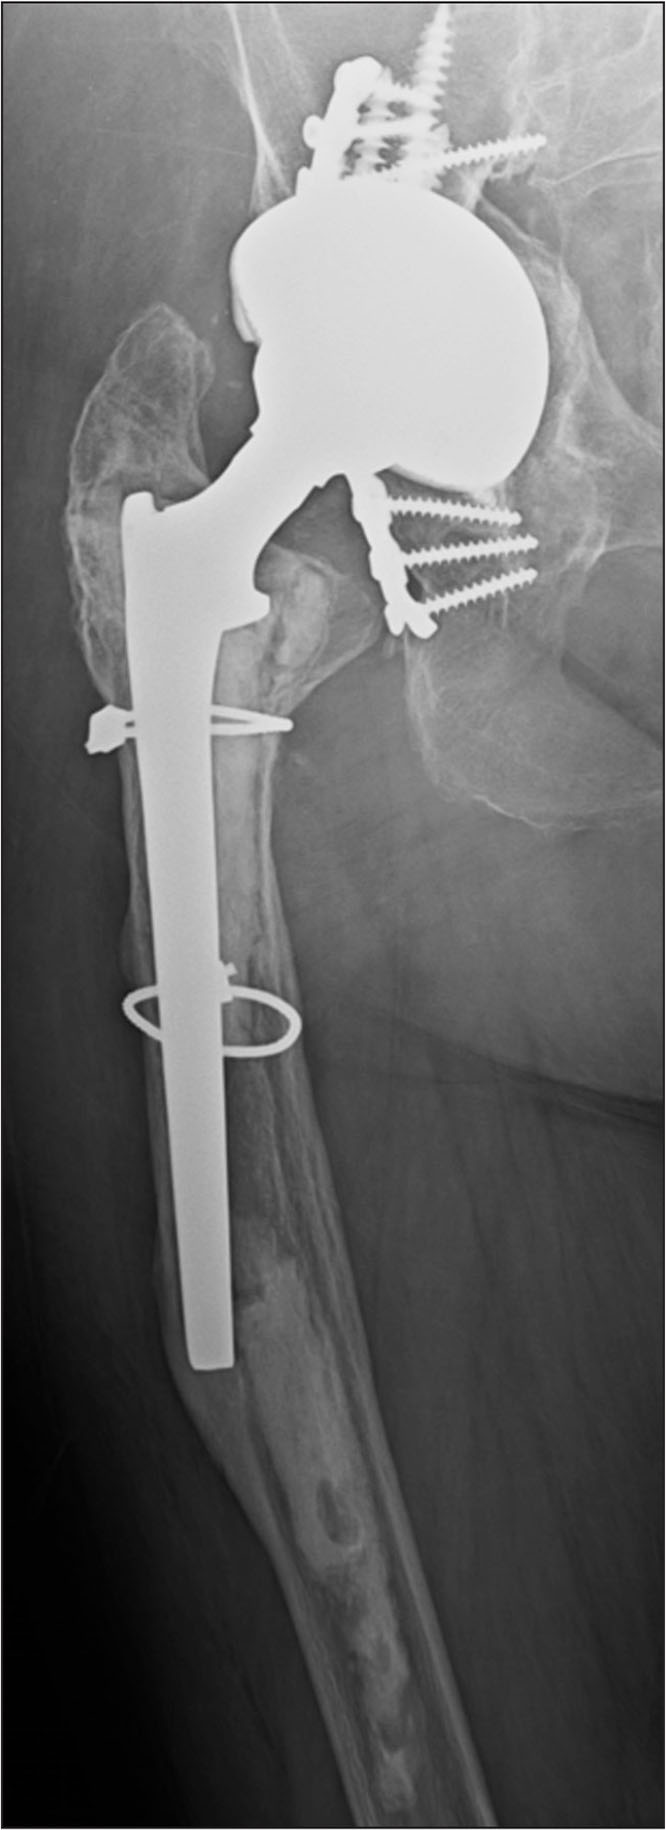 Loose cemented Omnifit (Osteonics, Mahwah, New Jersey) stem after cement-in-cement revision total hip arthroplasty 5 years earlier.